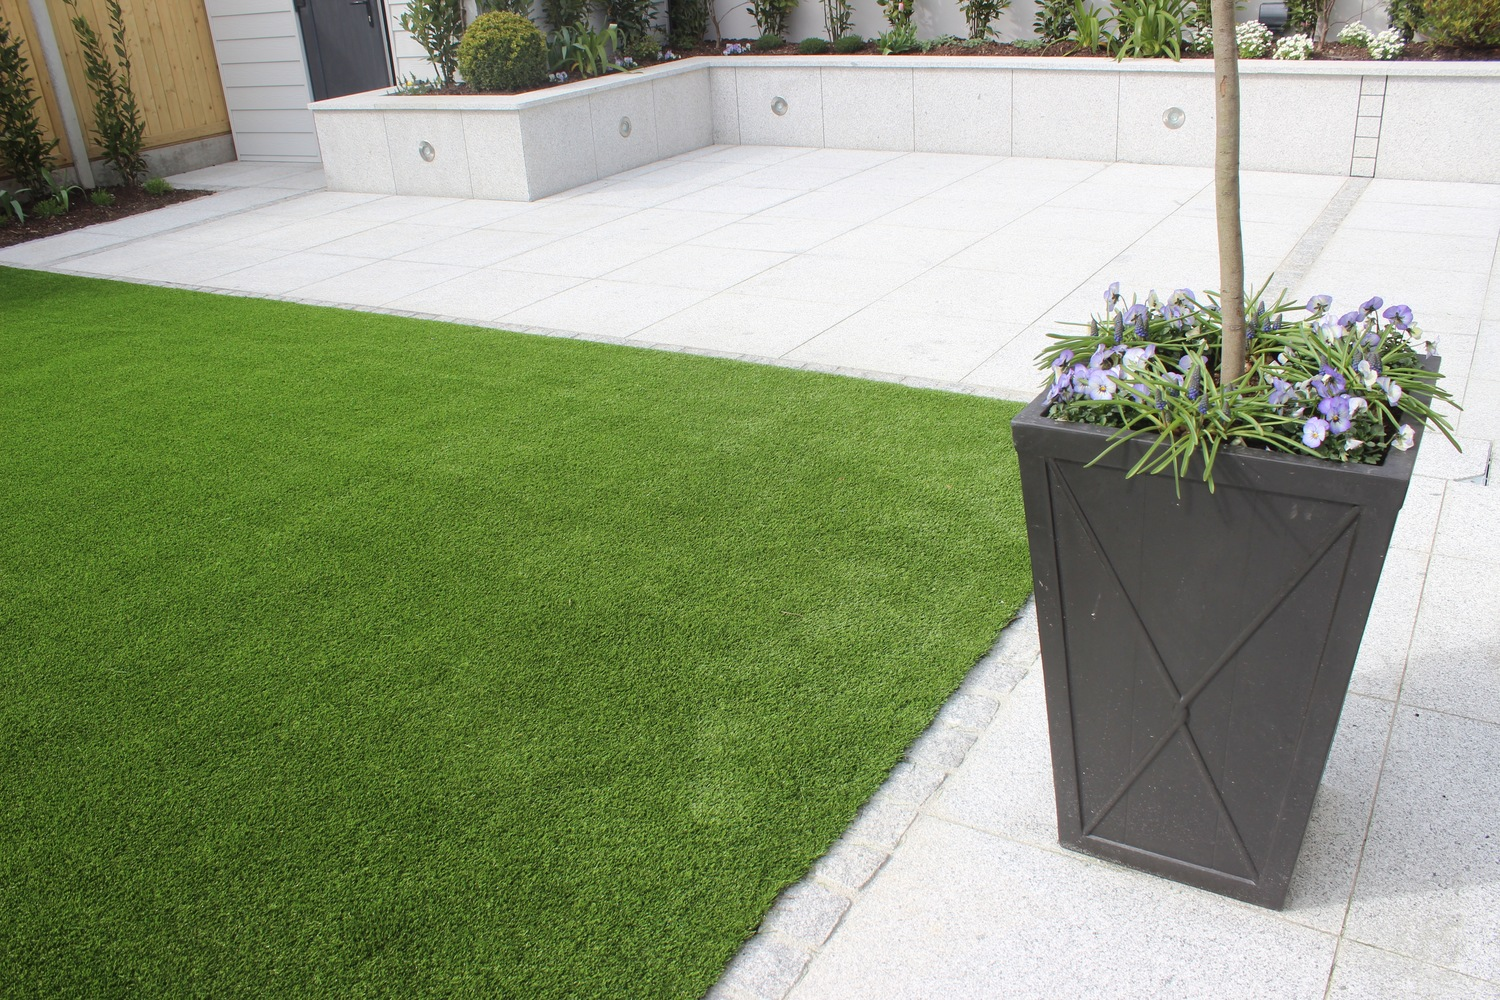 new garden design featuring artificial grass - Garden Design Kildare